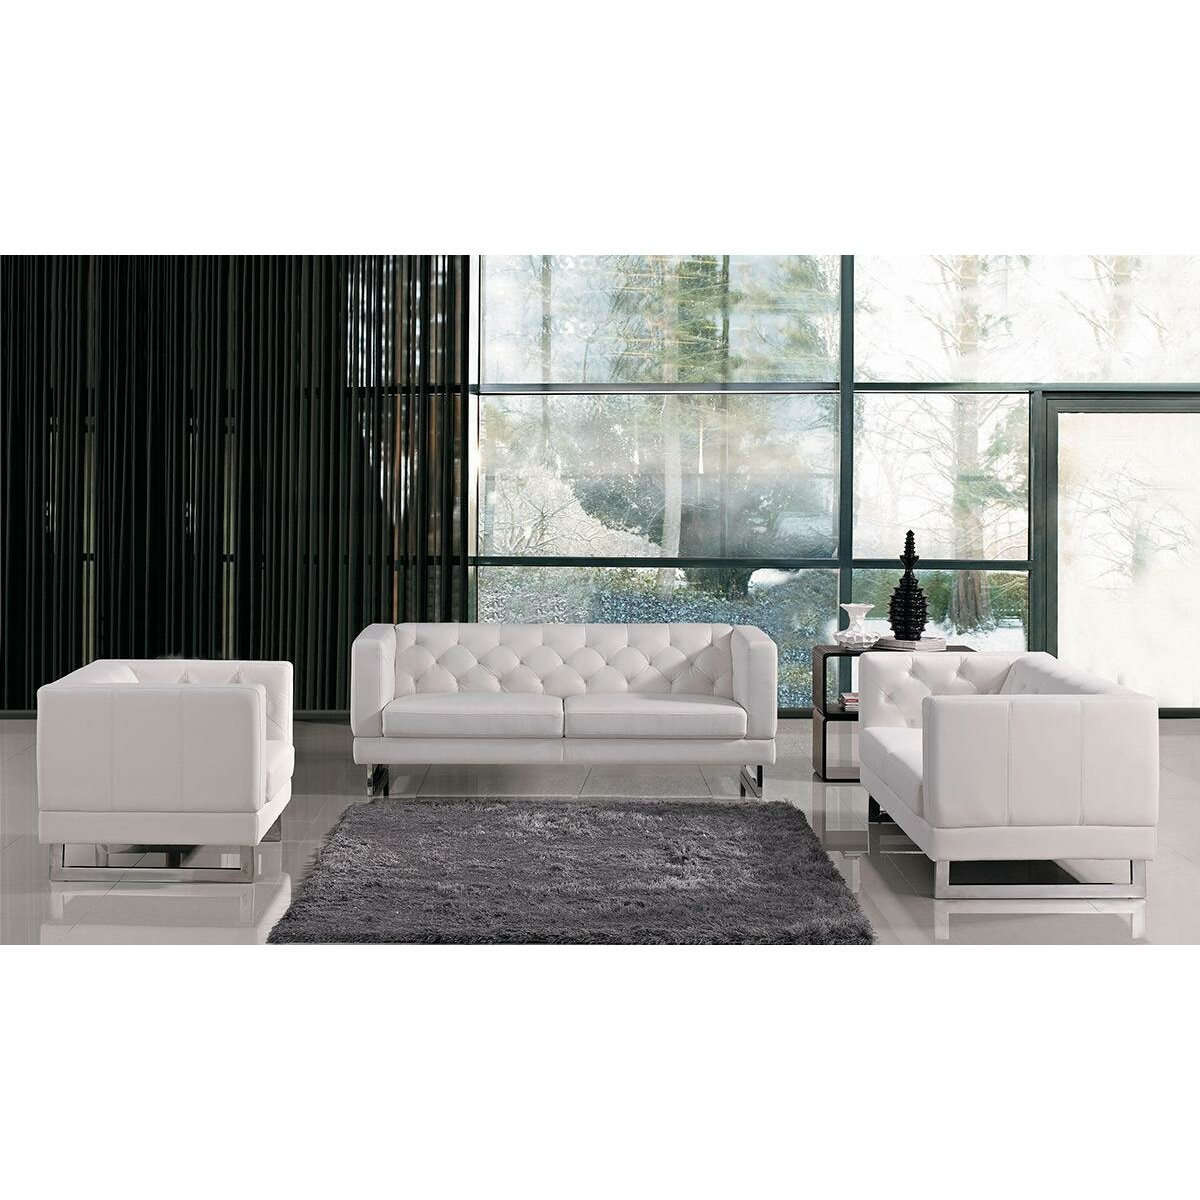 Windsor modern tufted eco leather living room set amp reviews wayfair